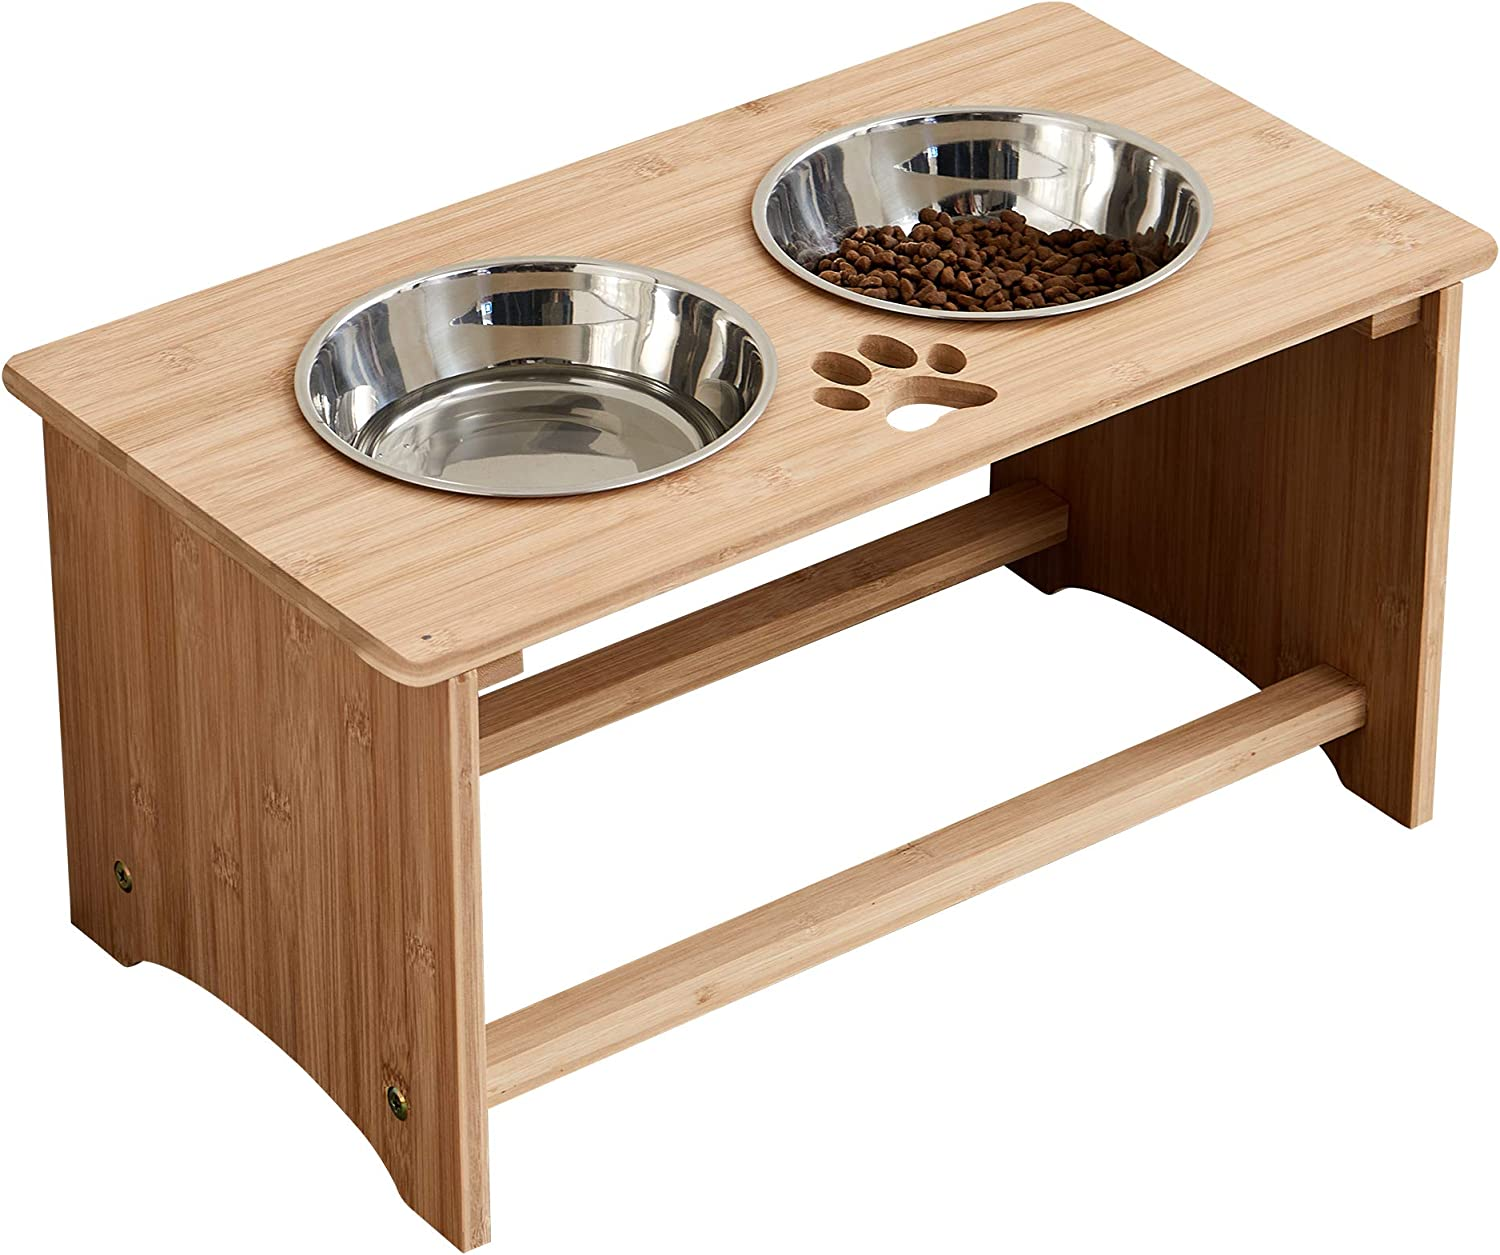 MRECHIR Raised Pet Bowls for Cats and Dogs, Bamboo Elevated Dog Cat Food and Water Bowls Stand Feeder for Small to Large Dogs and Cats(10'' Tall)